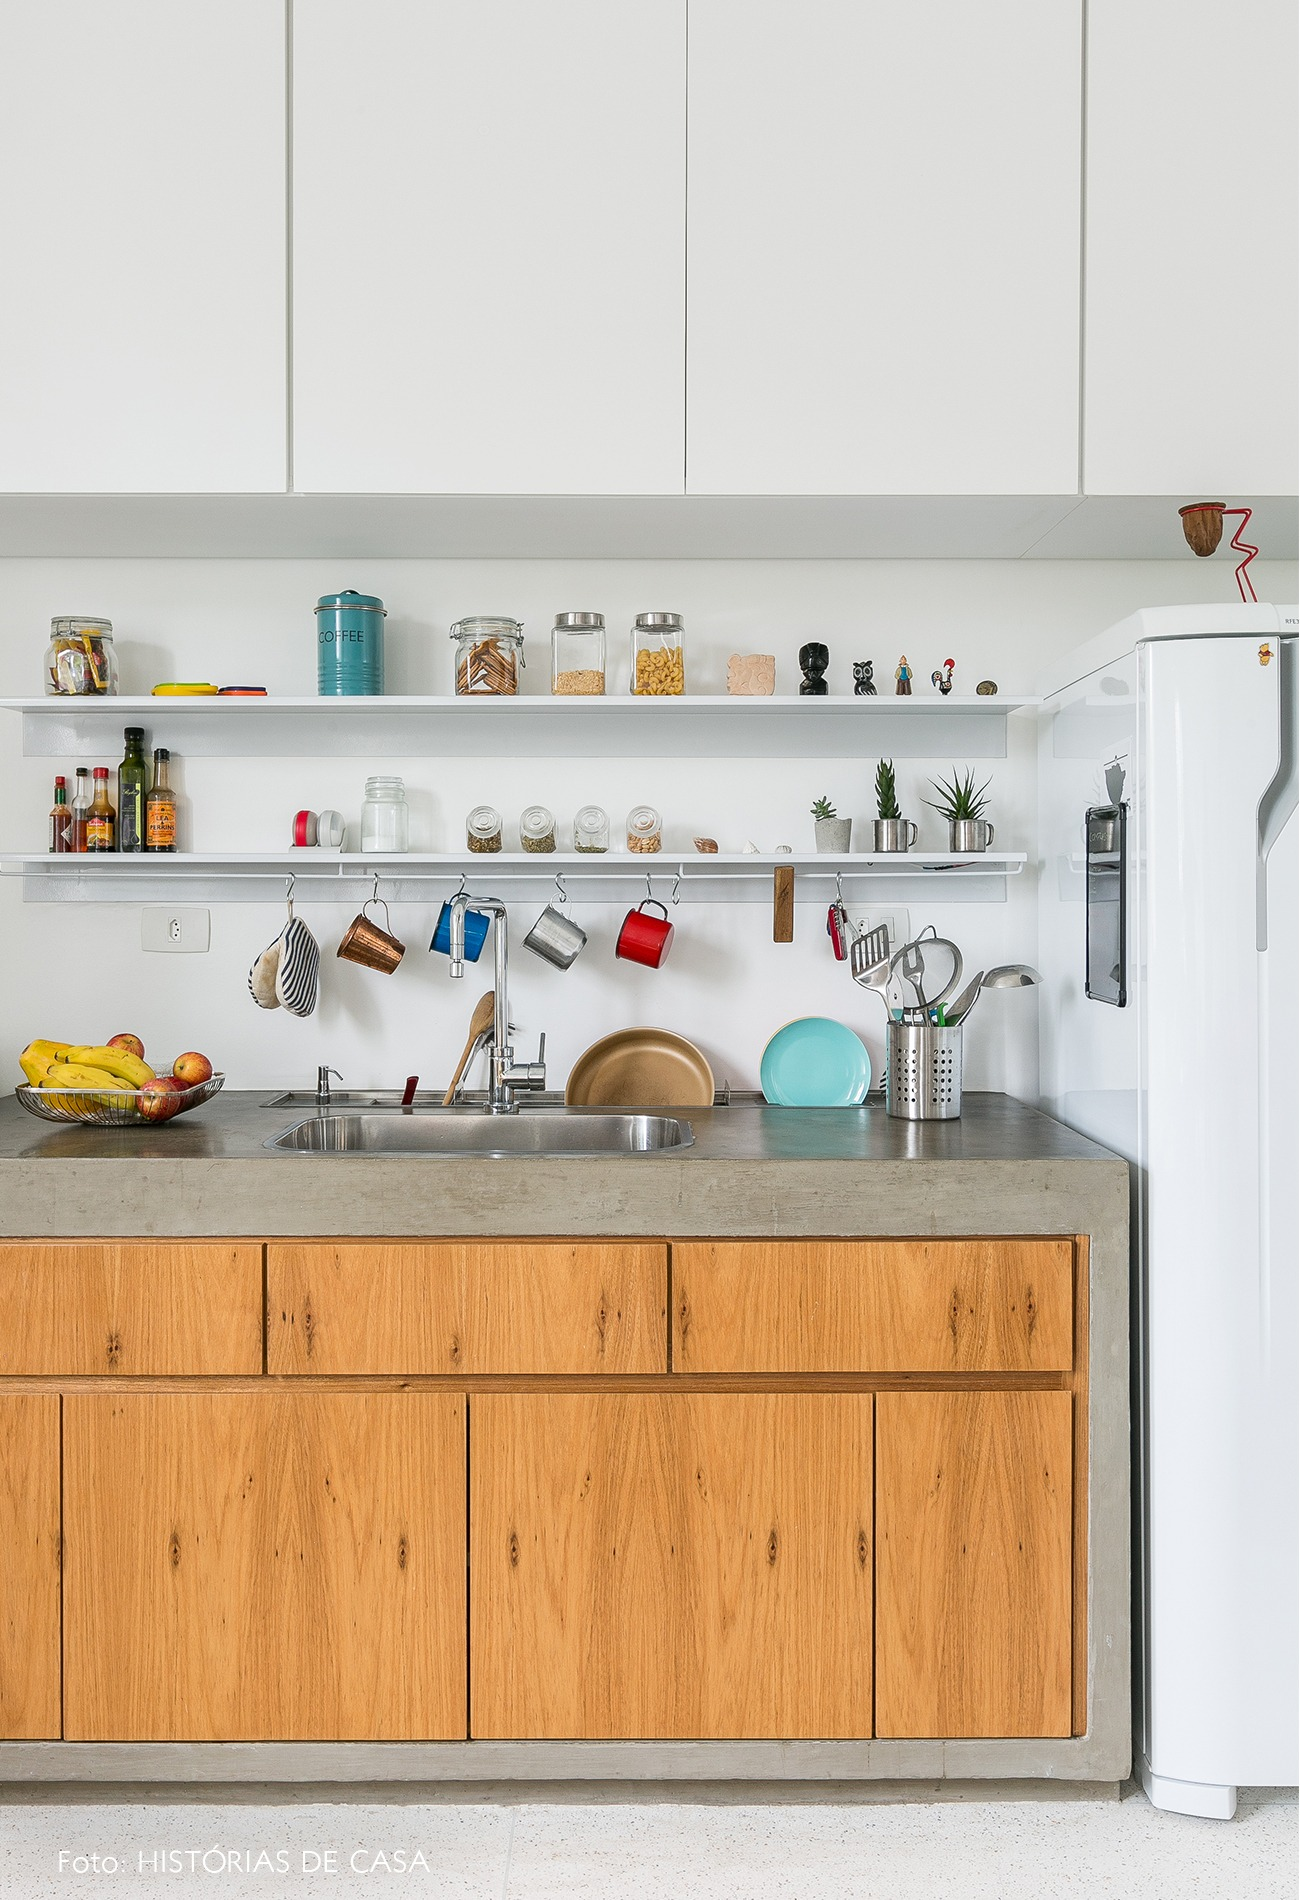 decoração apê minimalista cozinha branca marcenaria armários